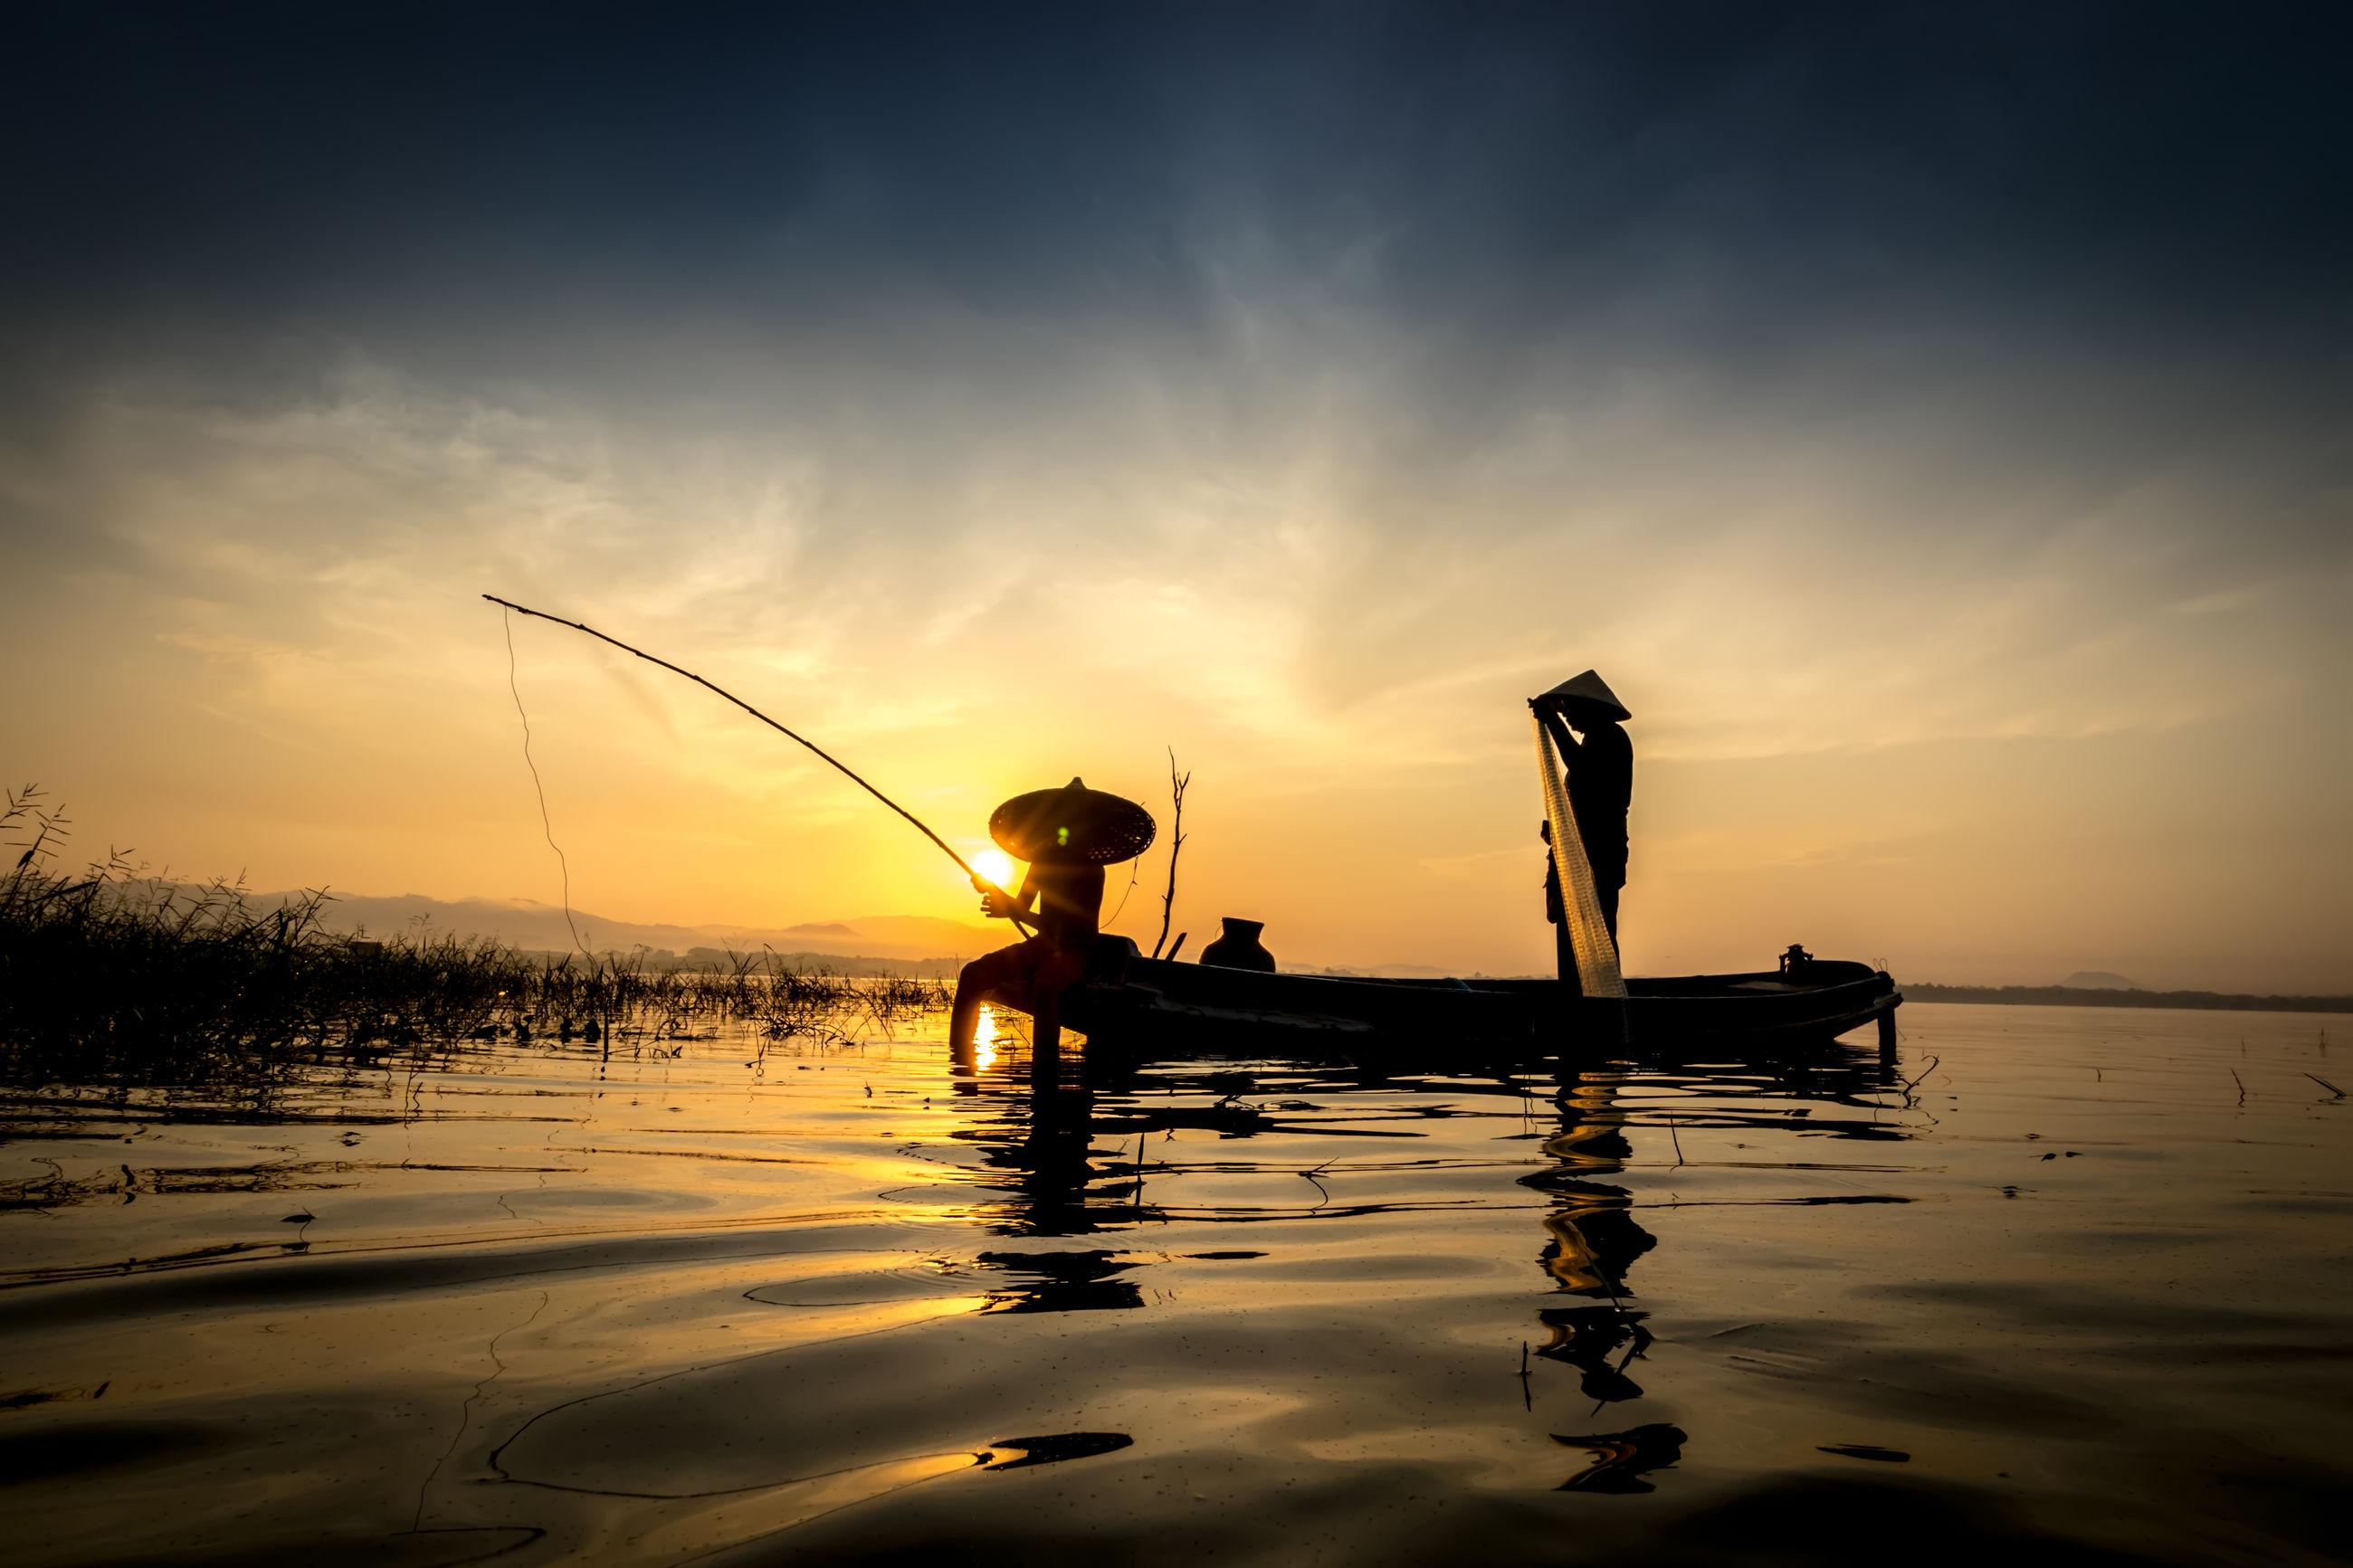 SILHOUETTE MEN FISHING IN BOAT AGAINST SKY AT SUNSET